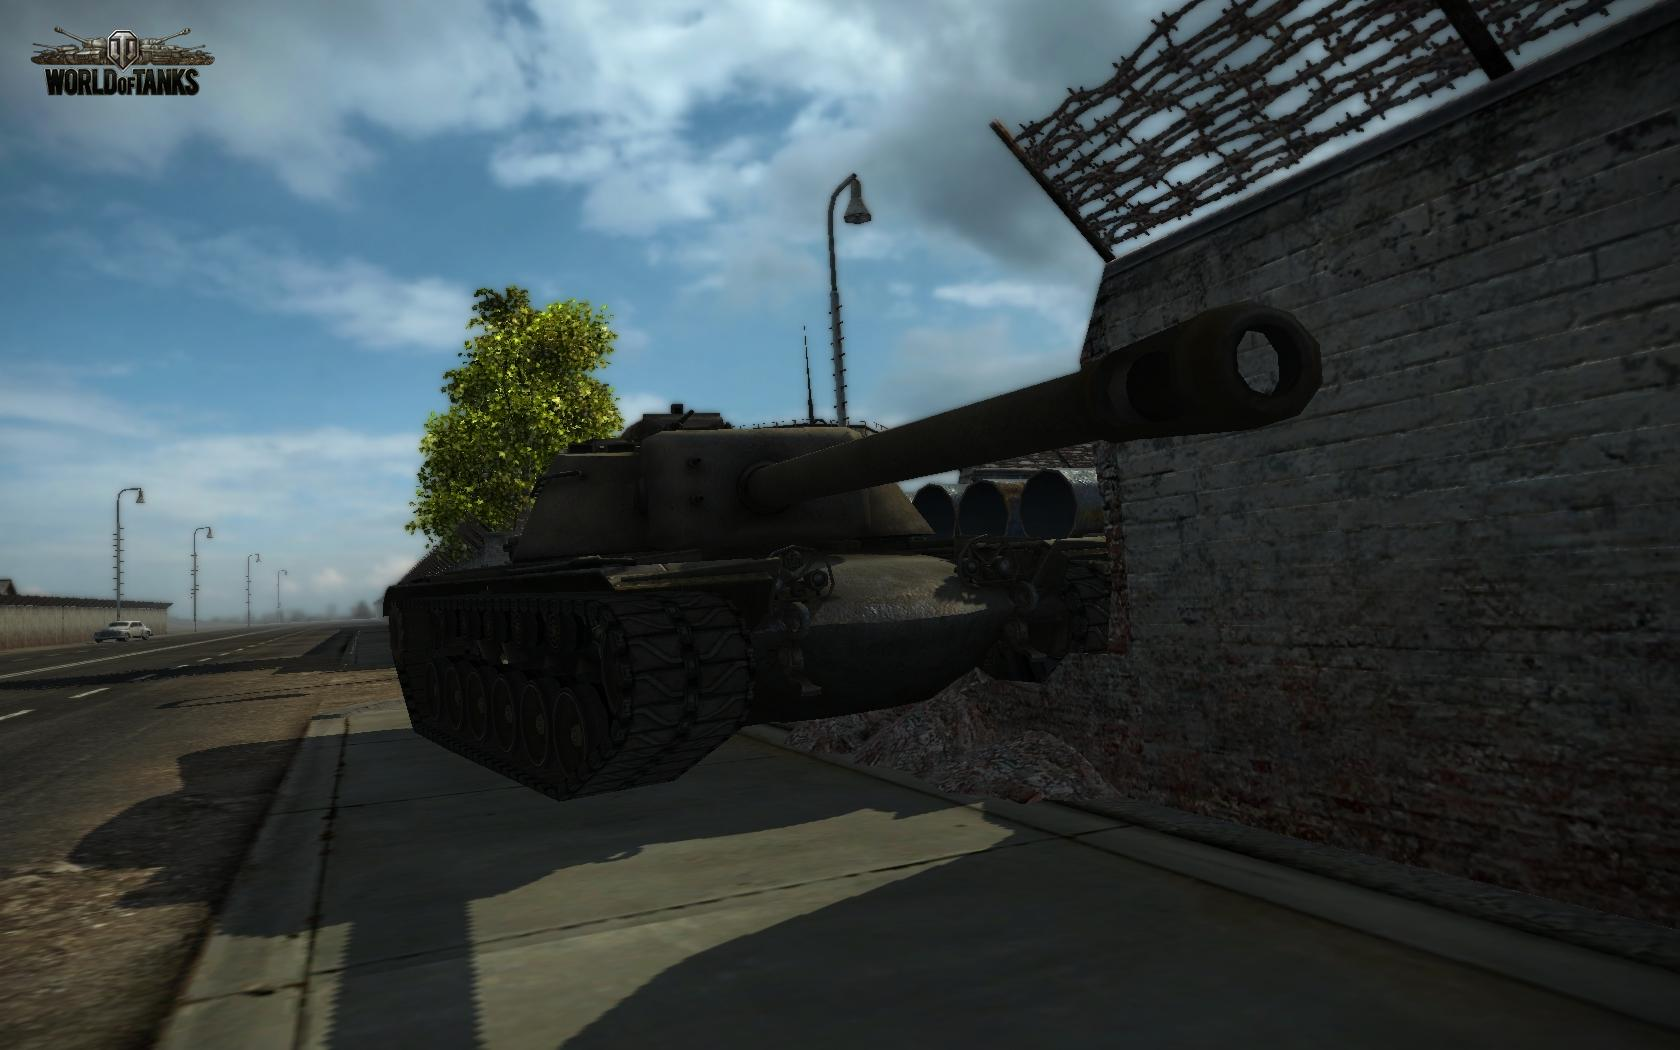 World_of_Tanks_patch_7.5